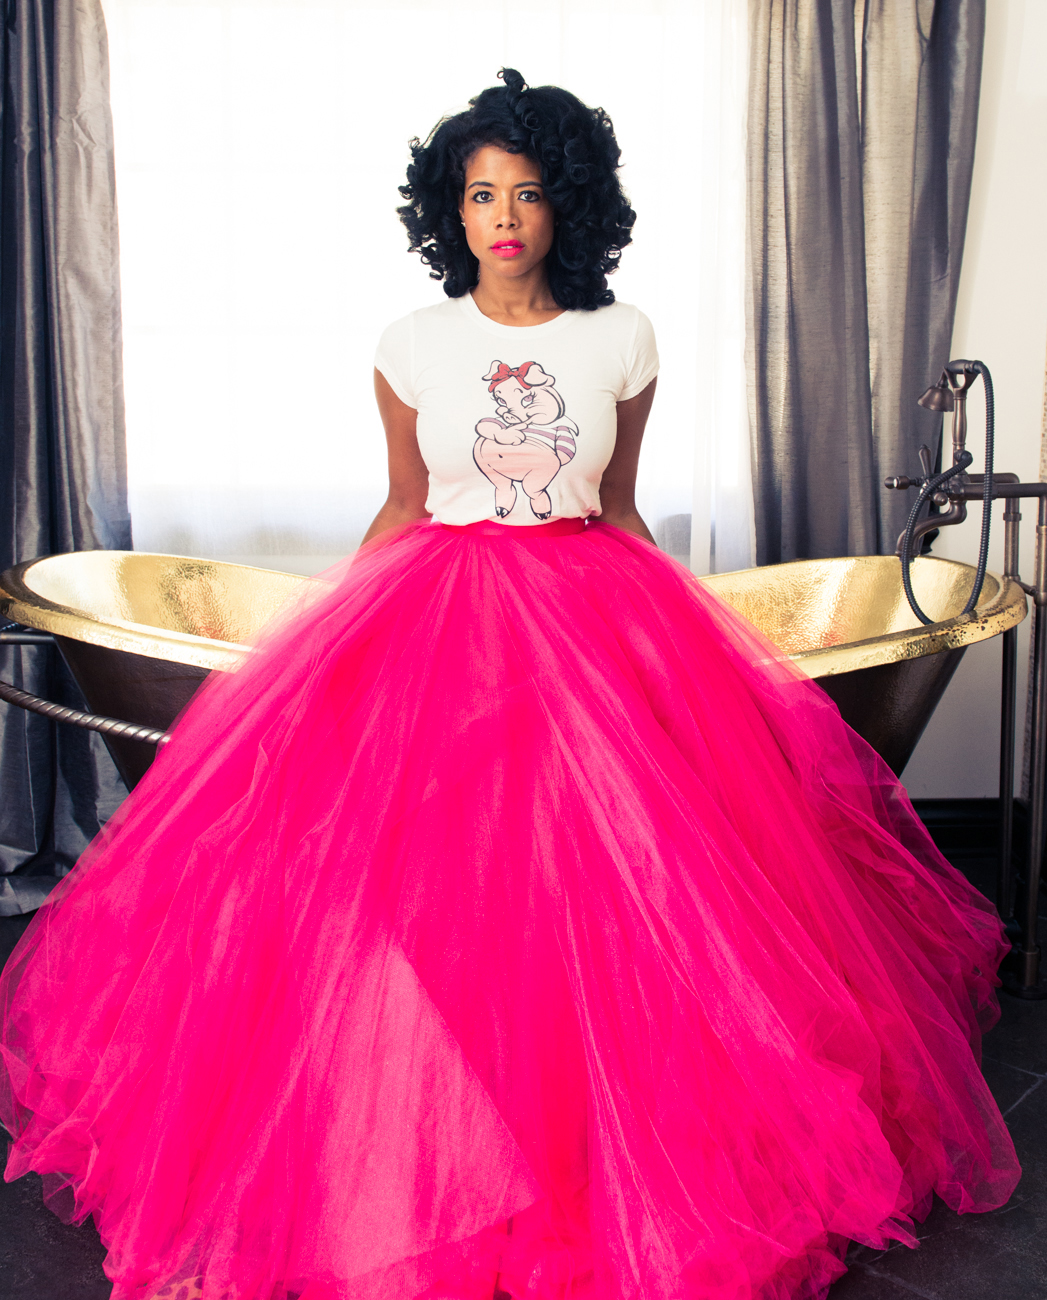 kelis, dressup, fashion, icon, the coveteur, los angeles, high fashion, her source,